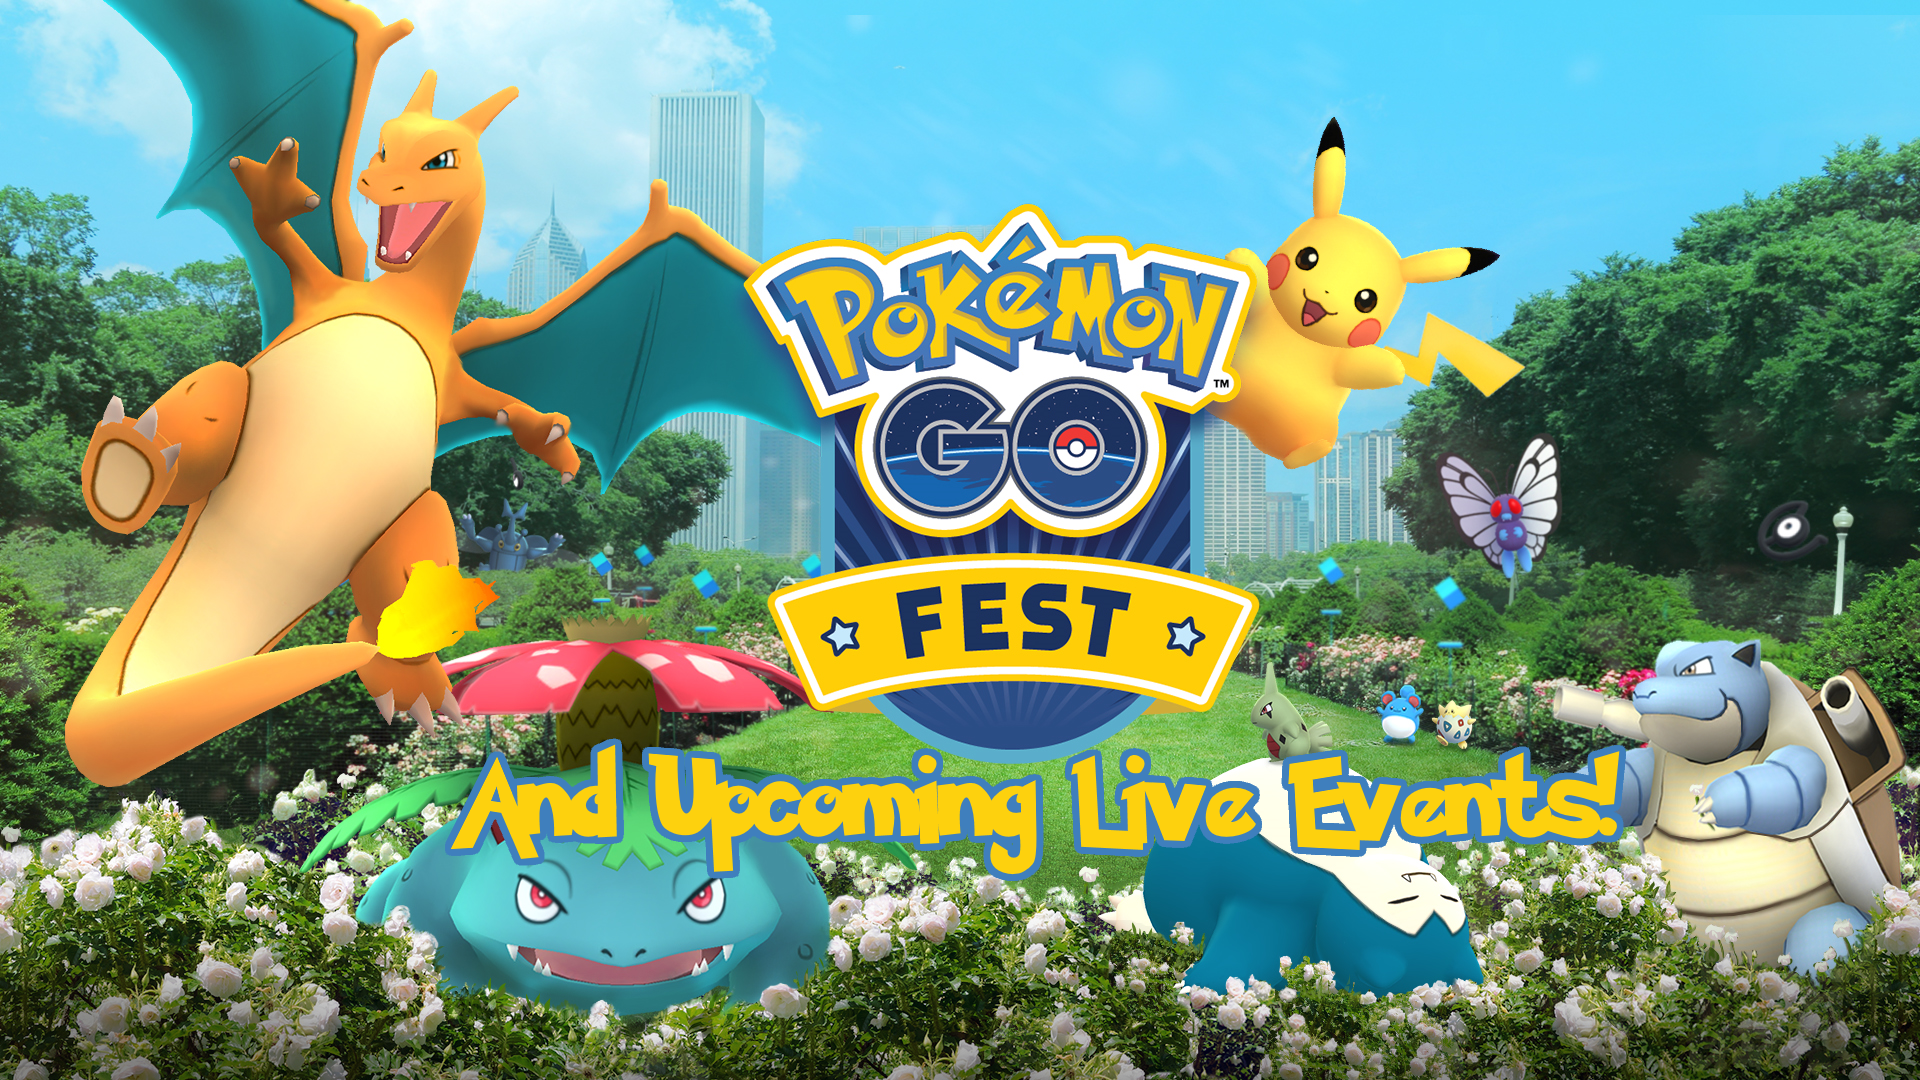 GOFest Featured